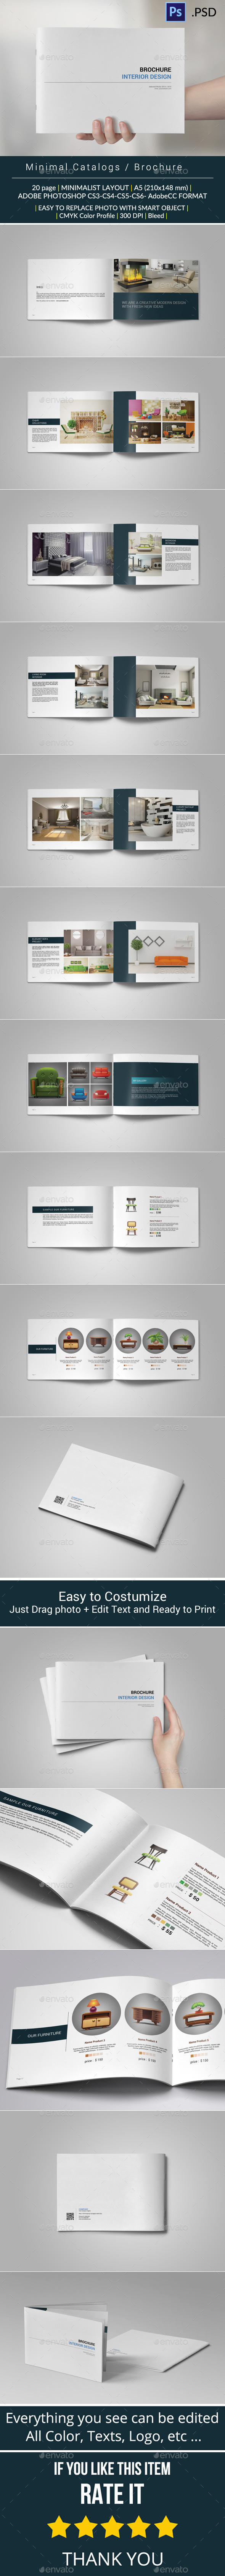 GraphicRiver Minimal Catalogs Brochure Template 10200061